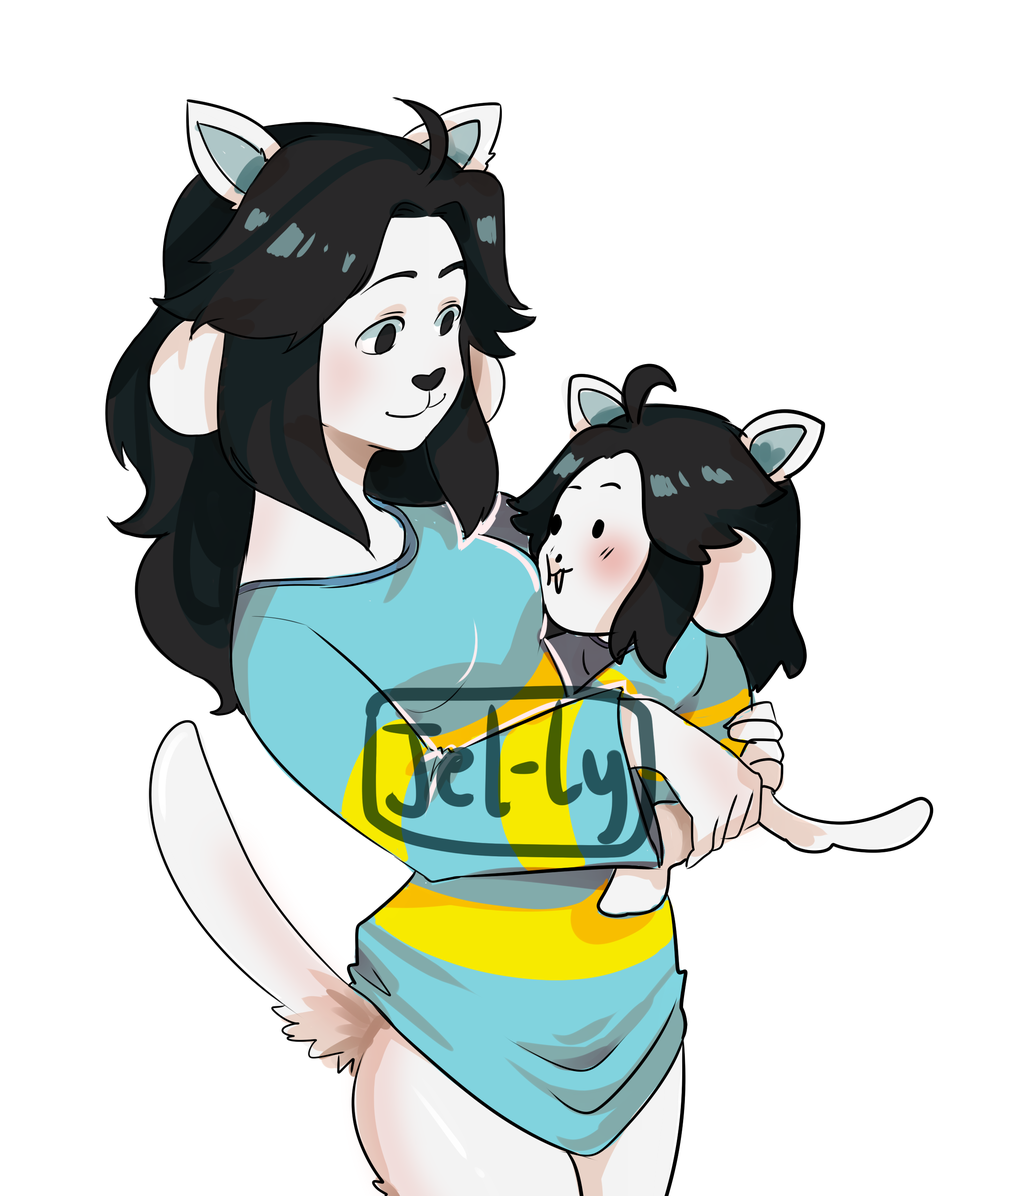 Most recent image: Temmie!!